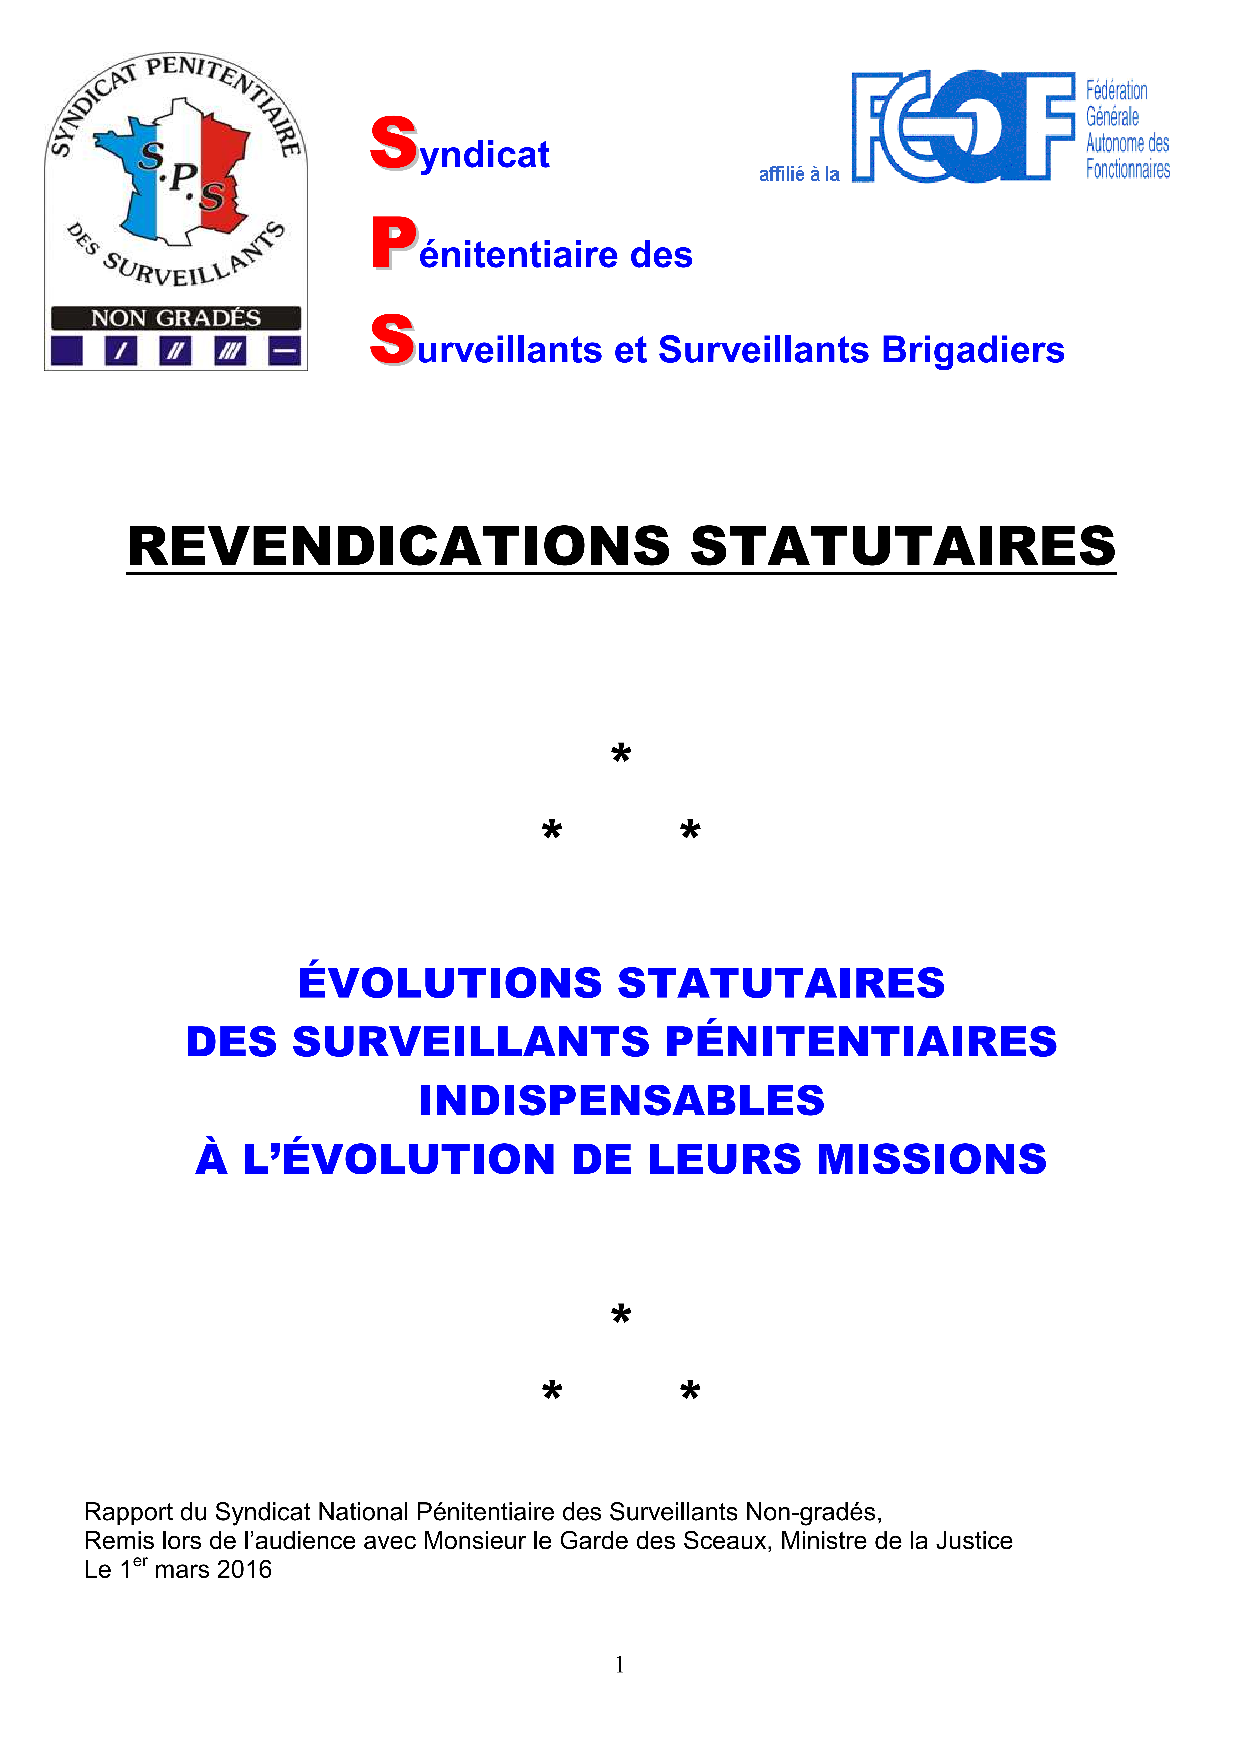 Revendications Statutaires